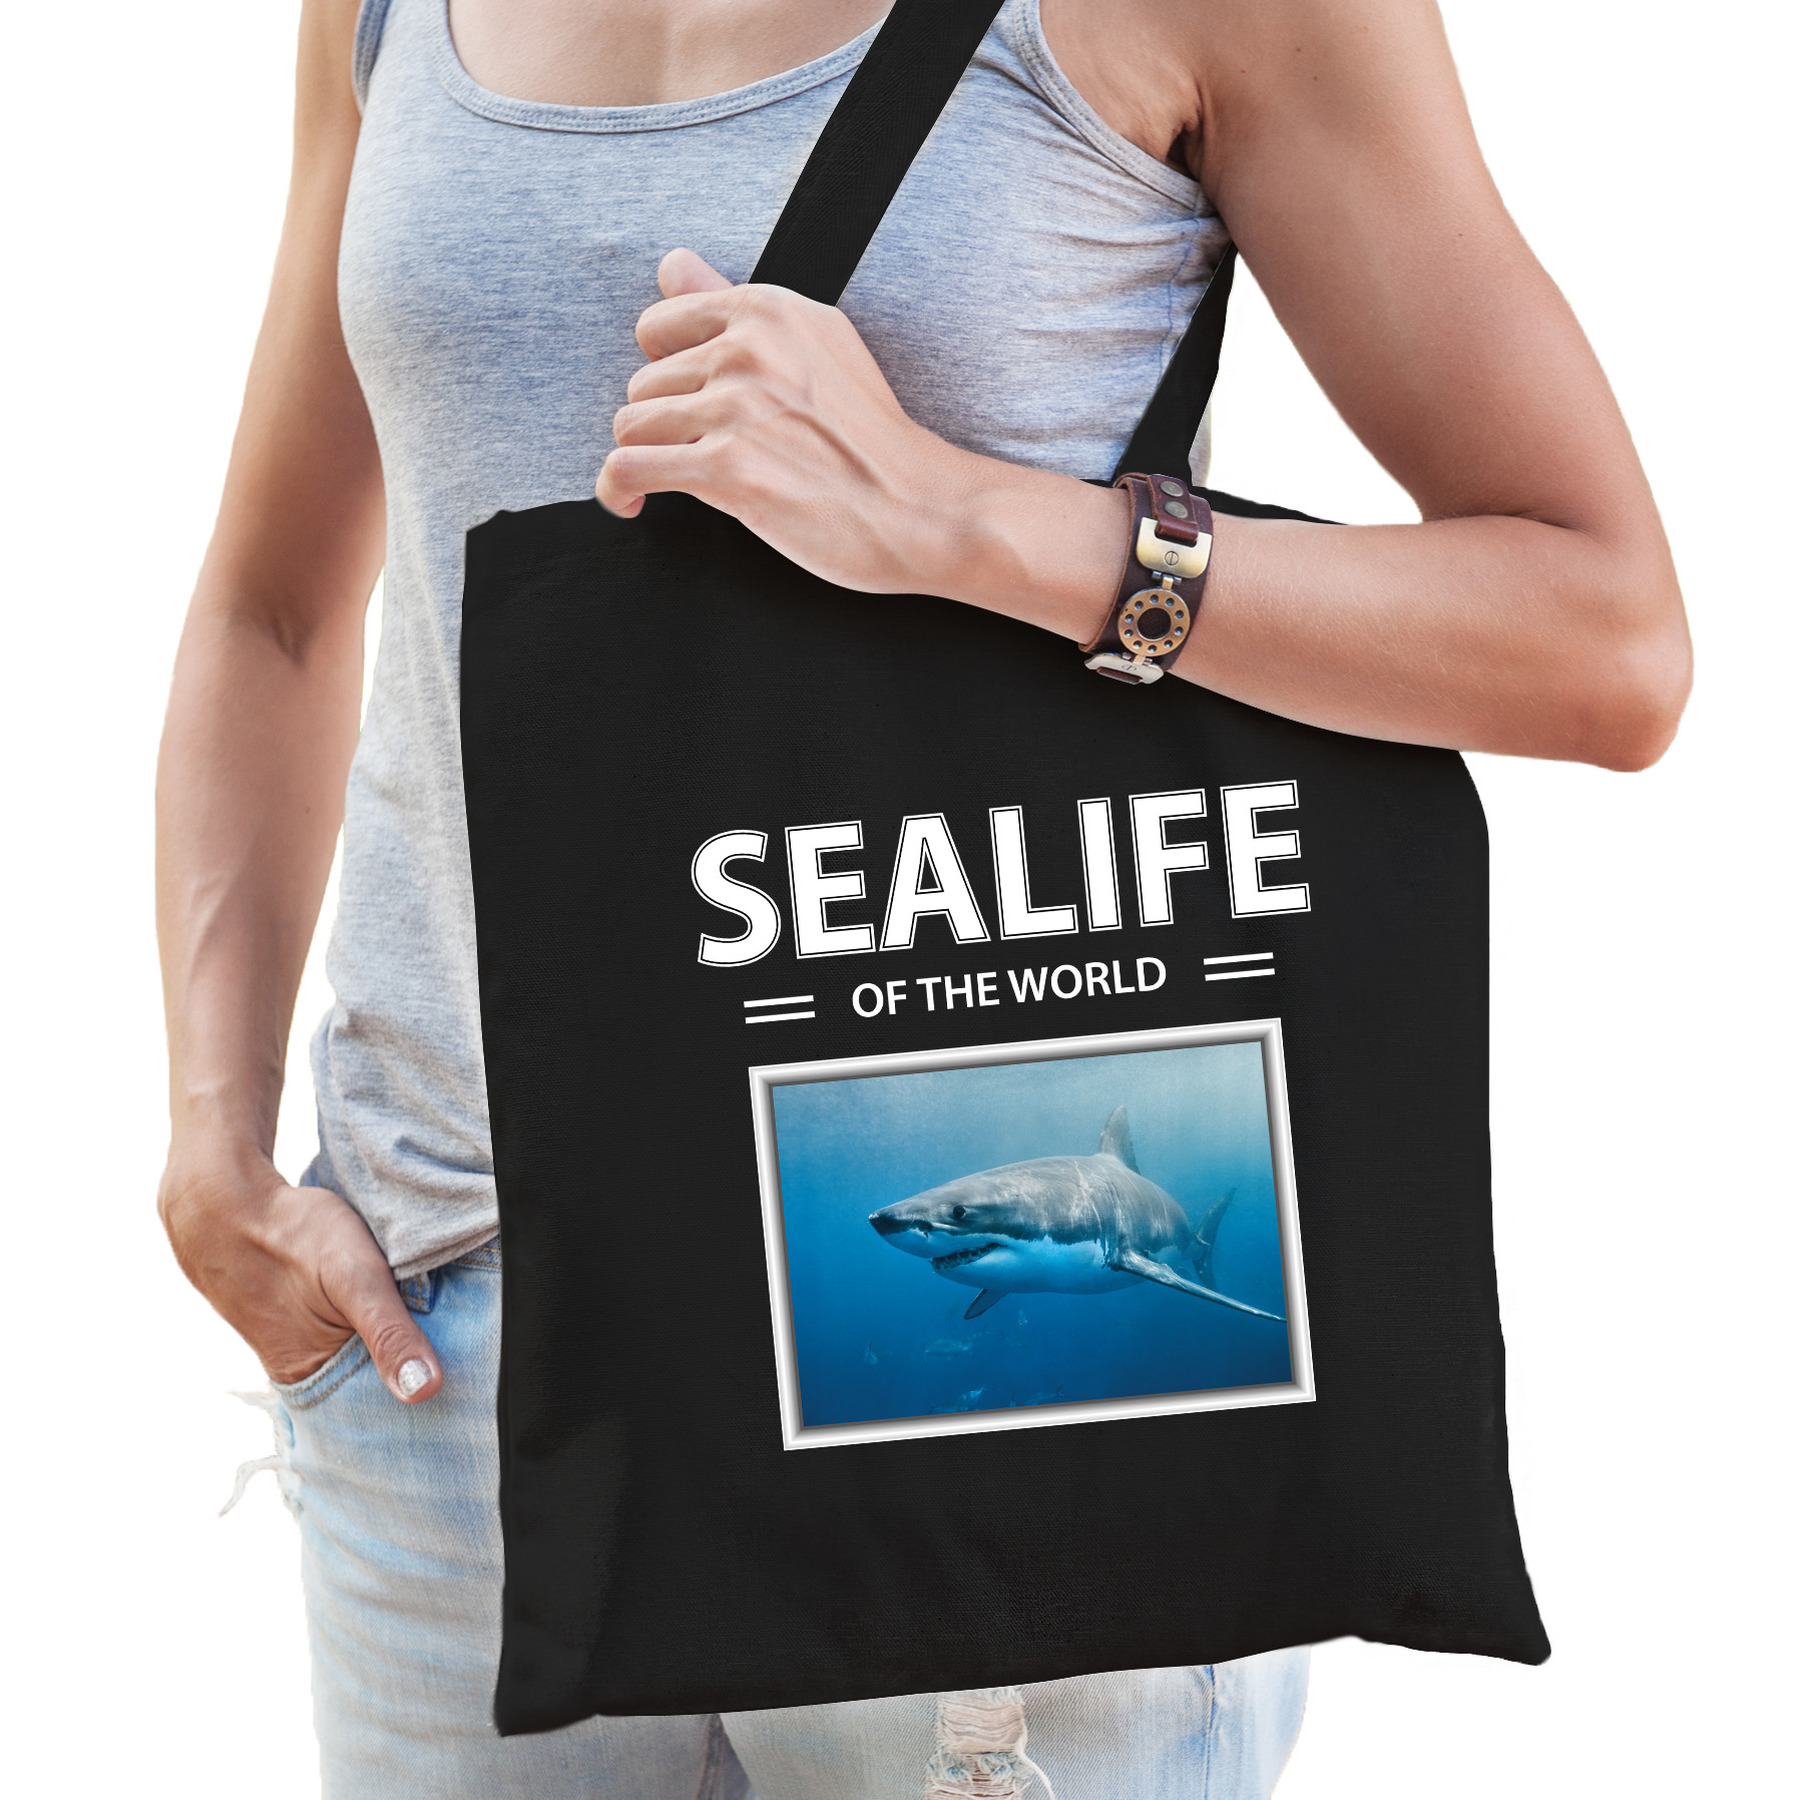 Katoenen tasje Haai zwart - sealife of the world Haaien cadeau tas